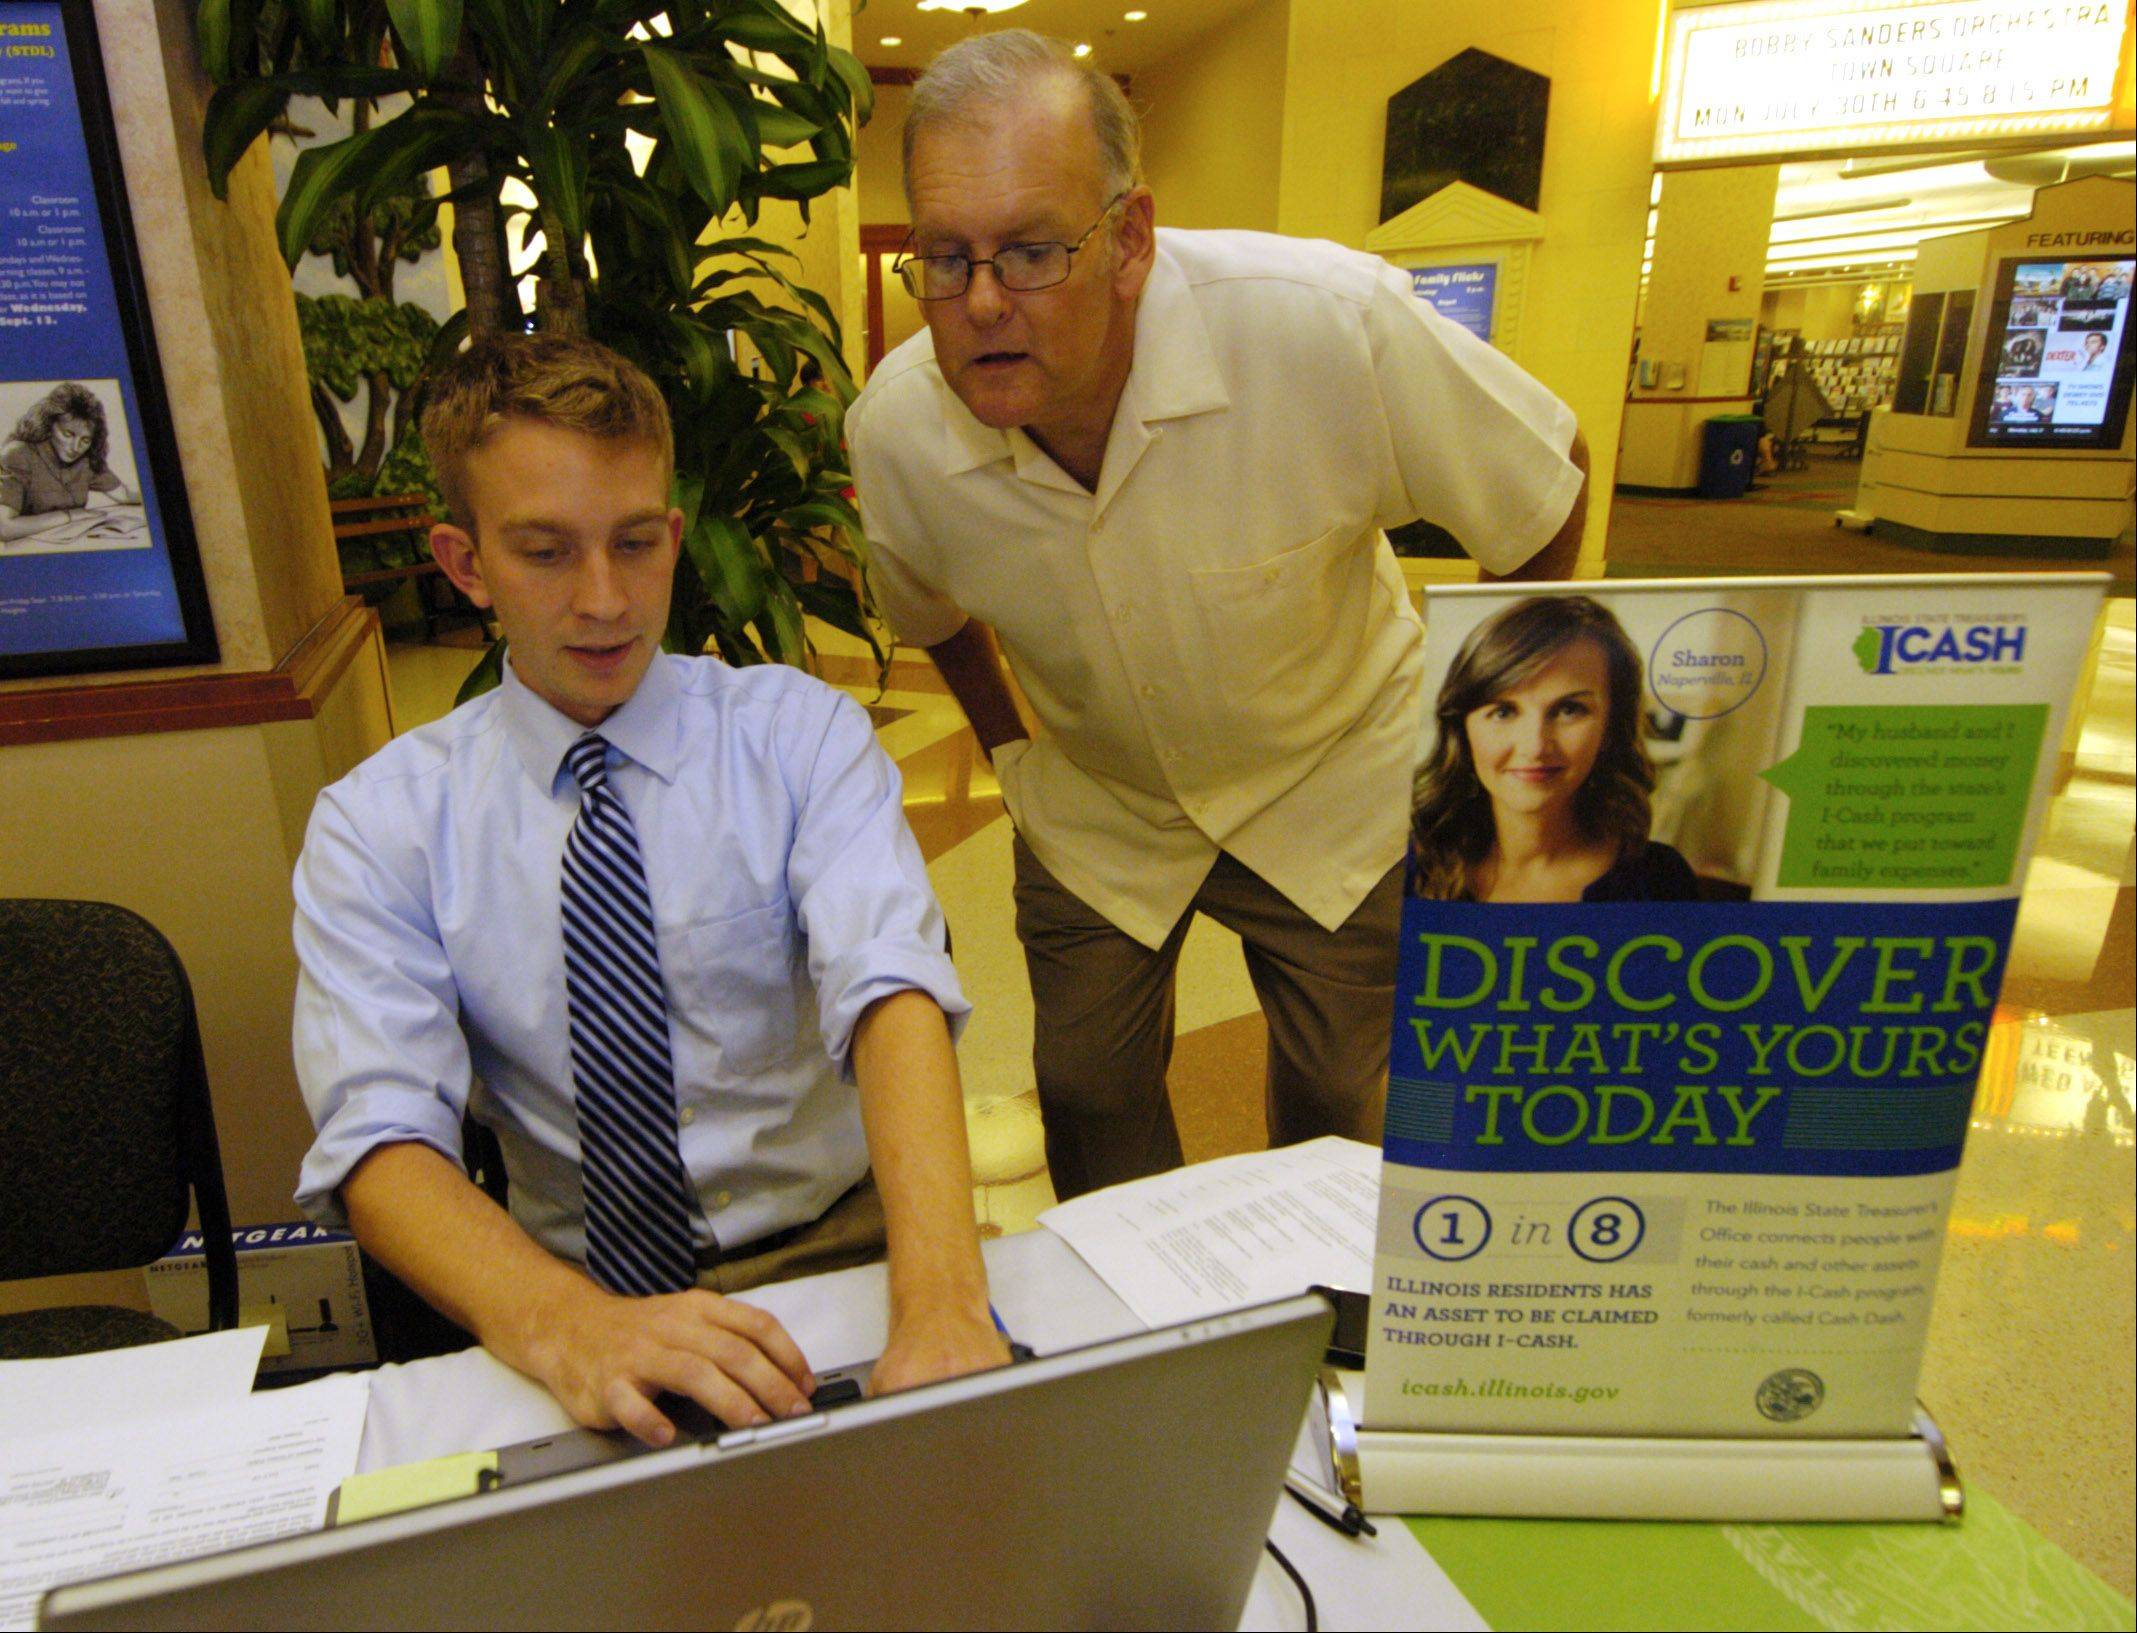 Alex Giesick, left, an intern with the state treasurer's office, assists Schaumburg Township Clerk Tim Henneghan as he checks for unclaimed property through use of the I-Cash program website.